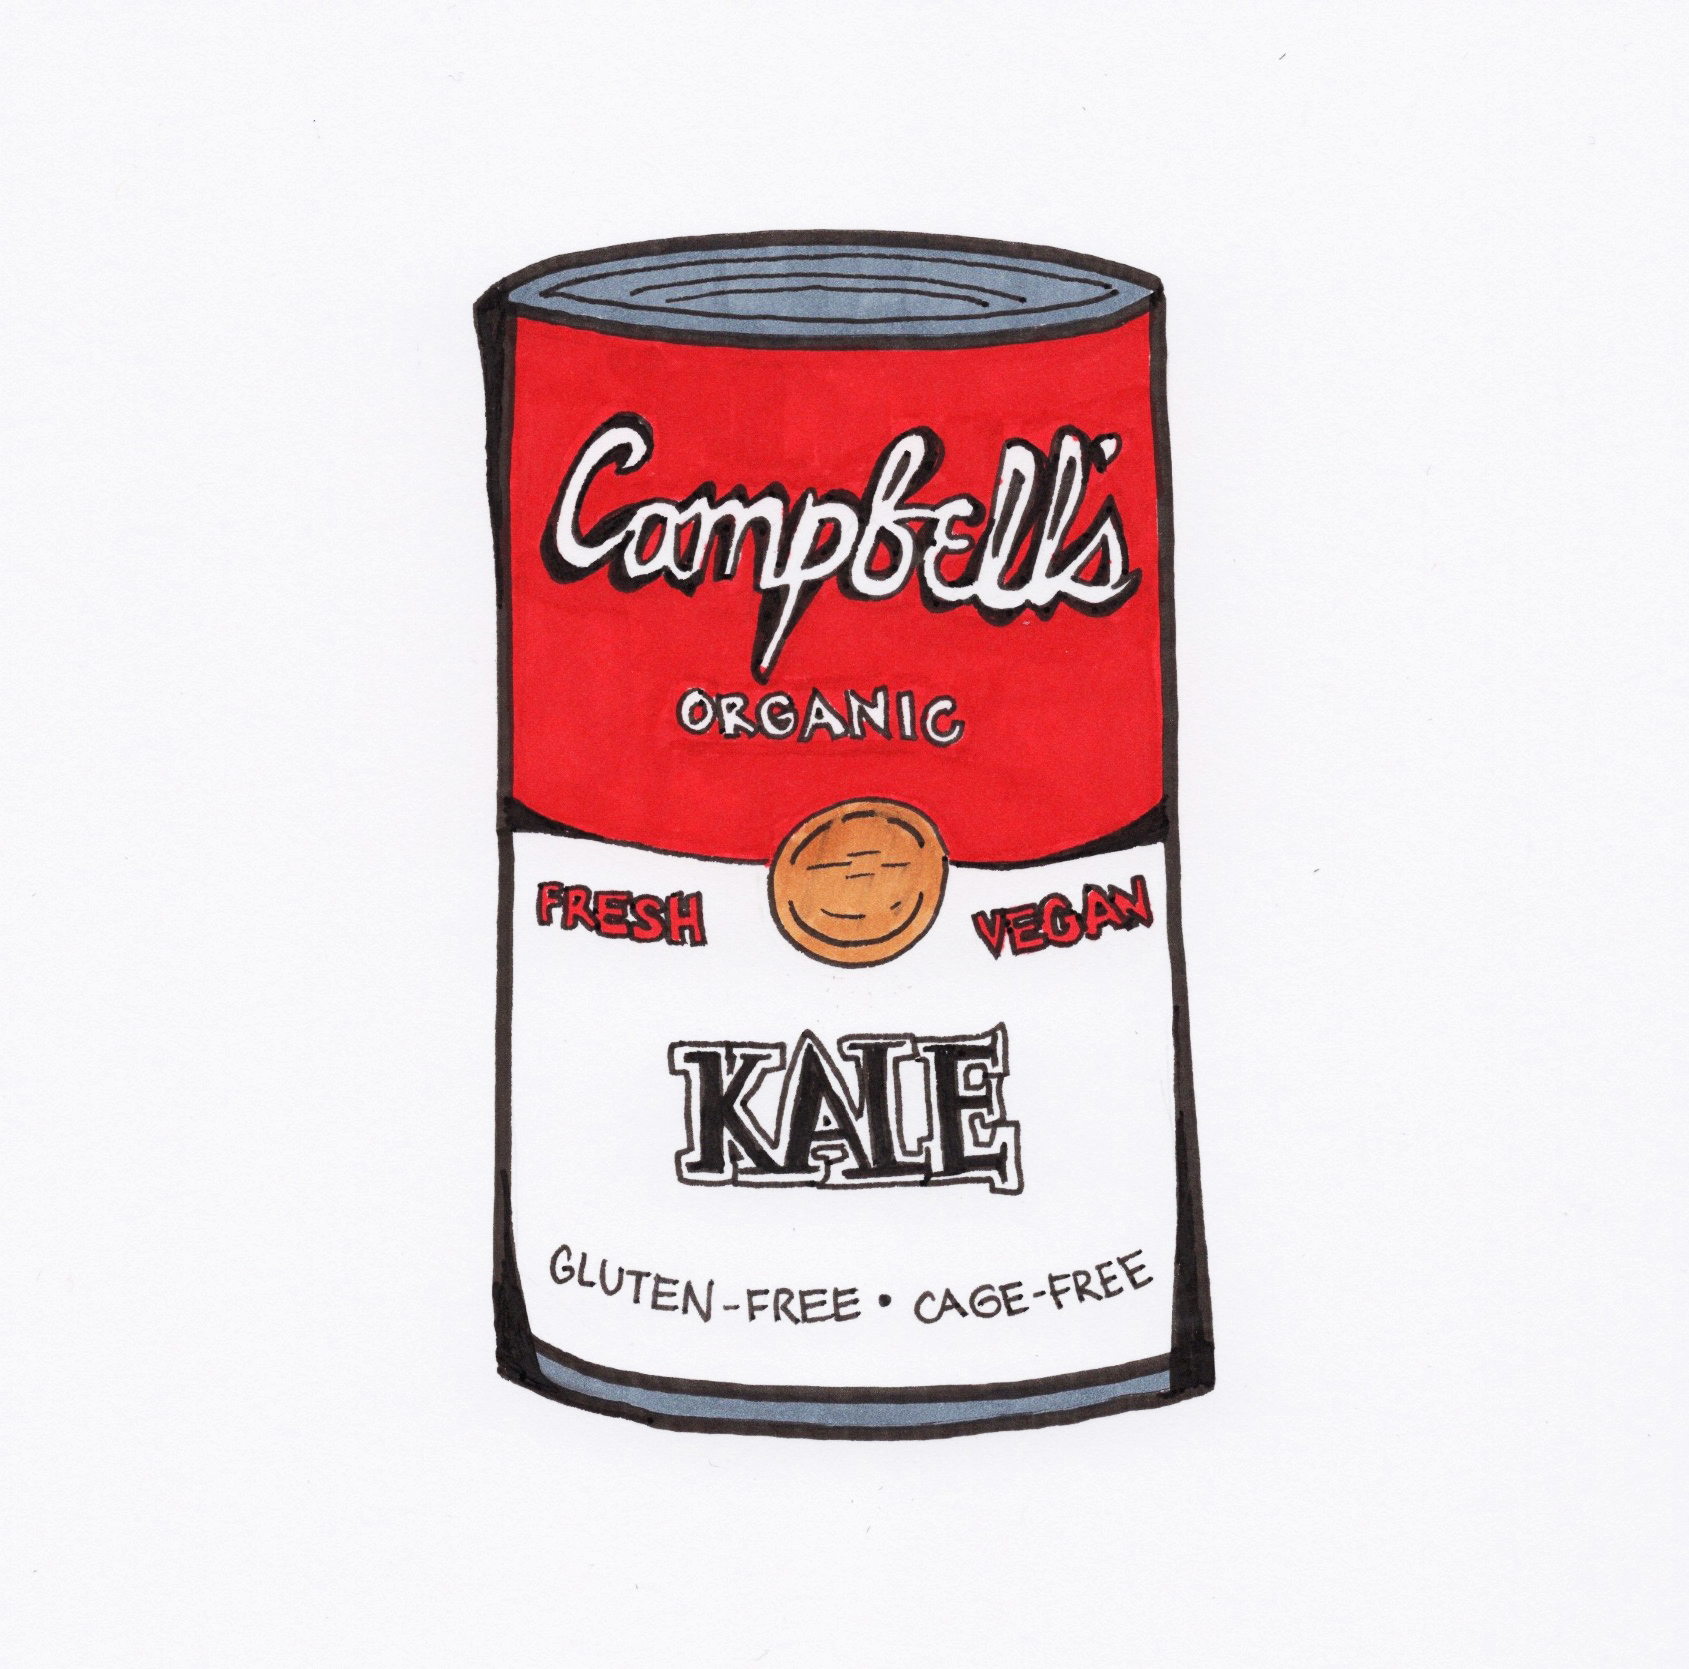 Maggie L. - Campbell's Kale.jpg